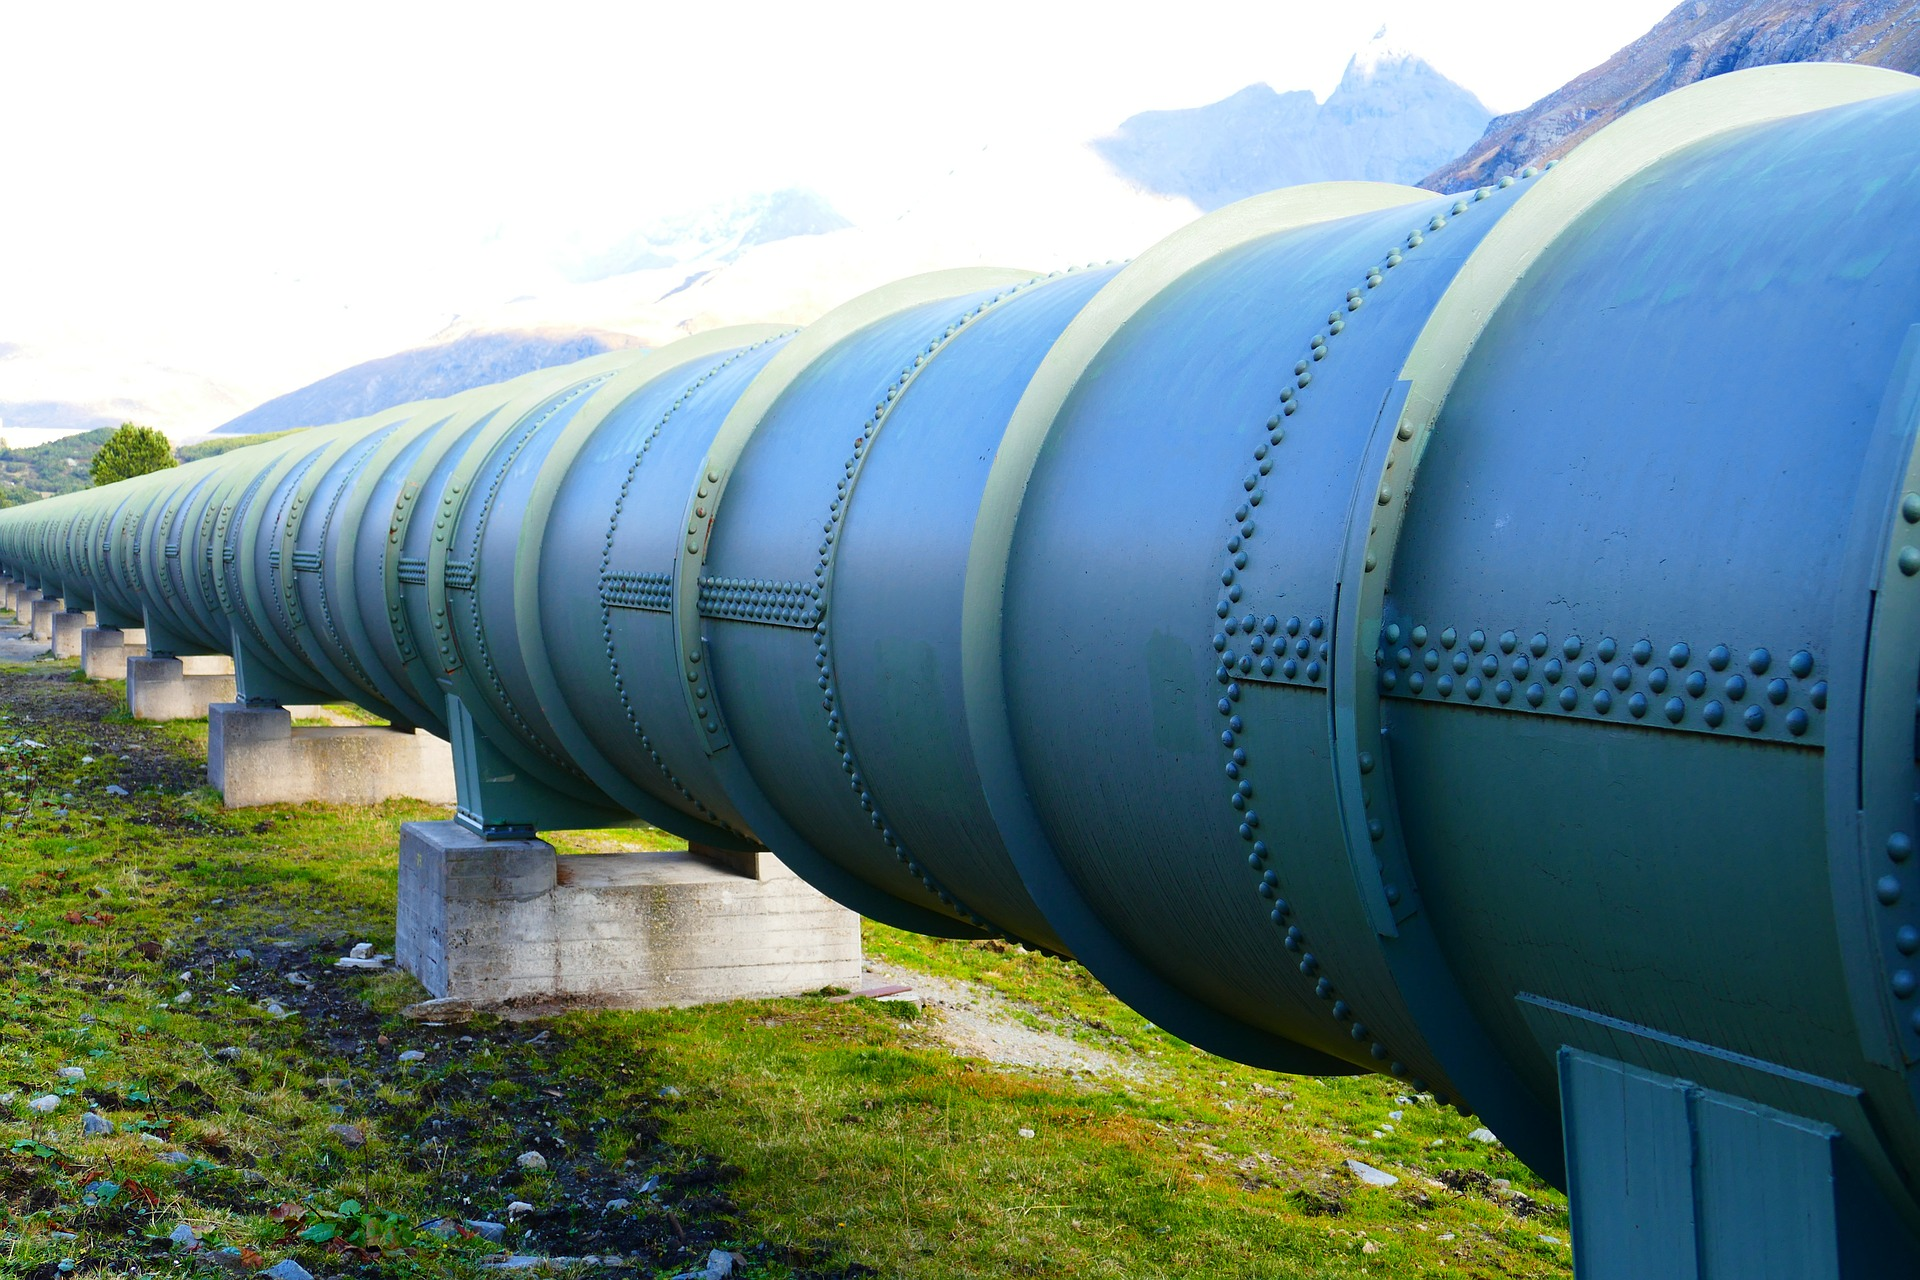 pipeline - License: Public Domain, Photo by LoggaWiggler